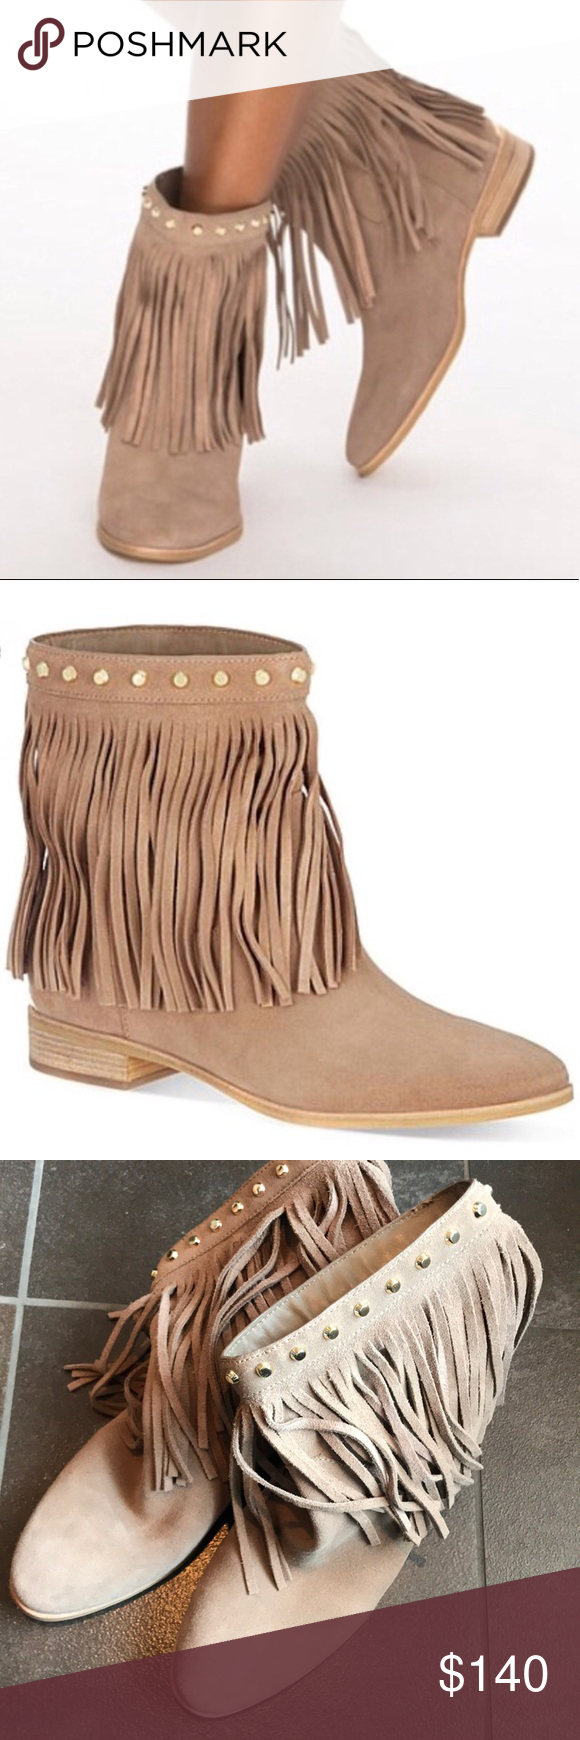 45d92db3bbc60 Spotted while shopping on Poshmark  ⭐️Michael Kors Fringe Suede Leather  Shoe Boots!  poshmark  fashion  shopping  style  Michael Kors  Shoes